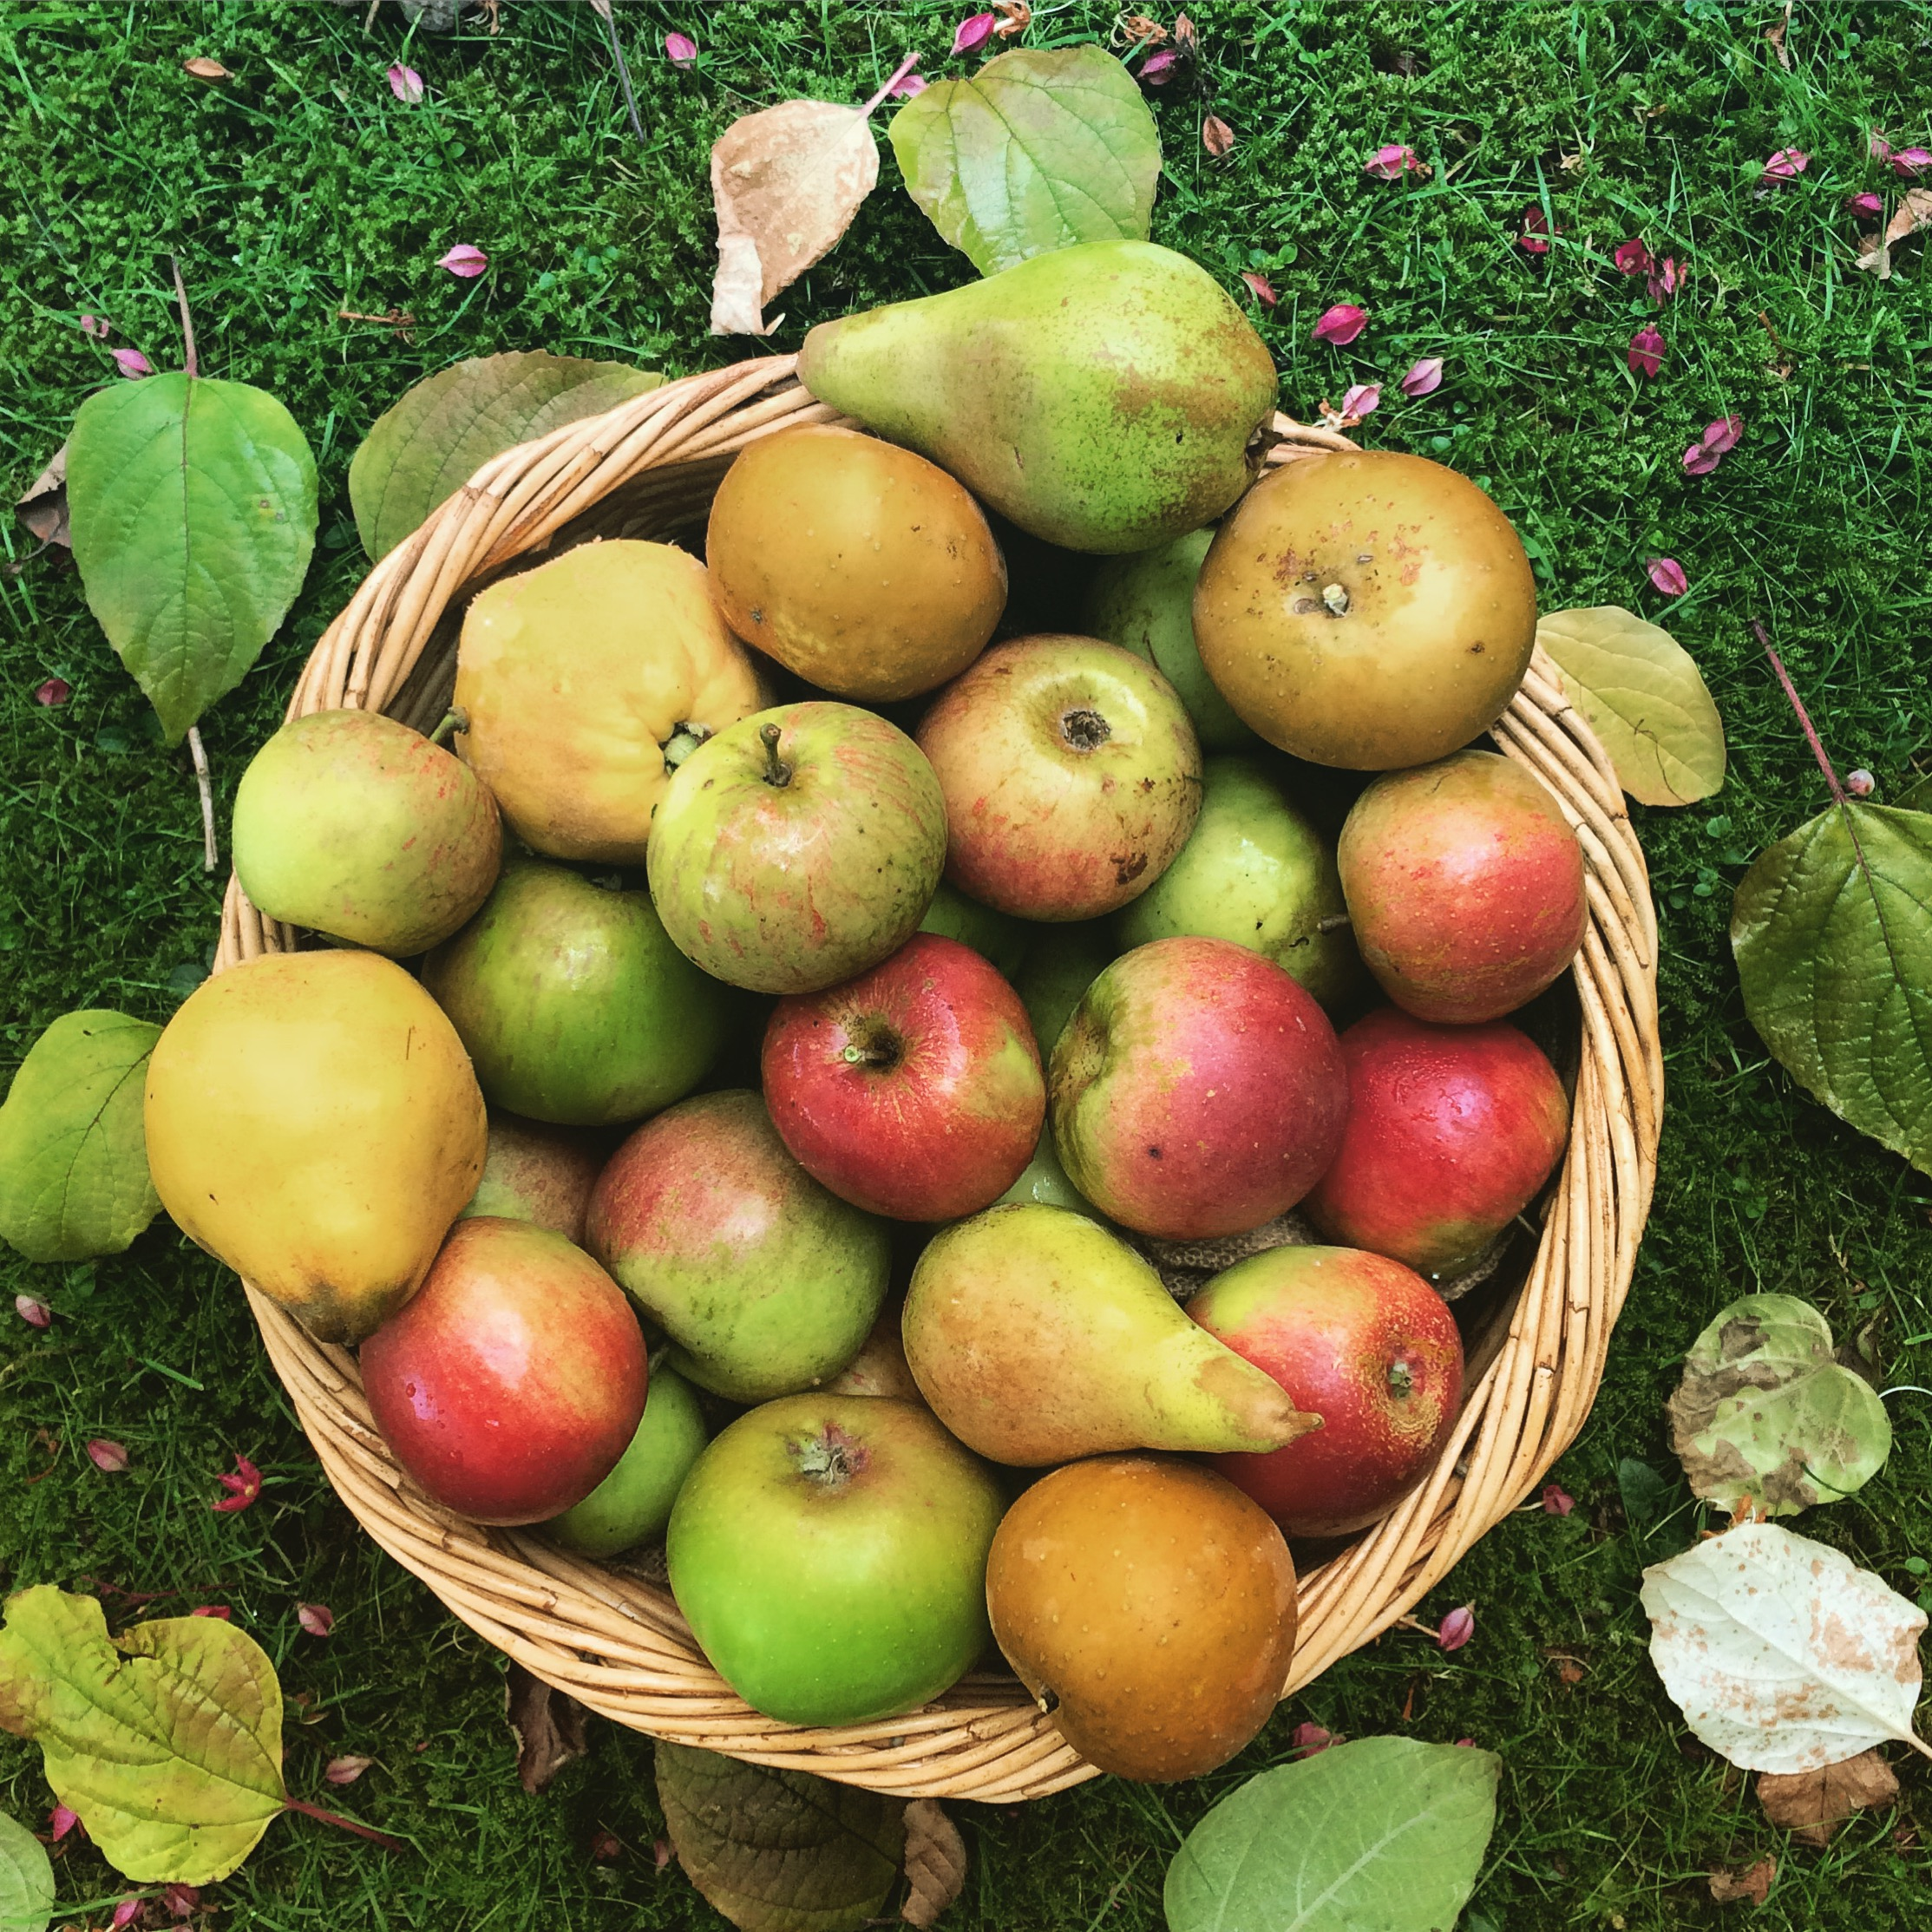 Apples and pears from the garden